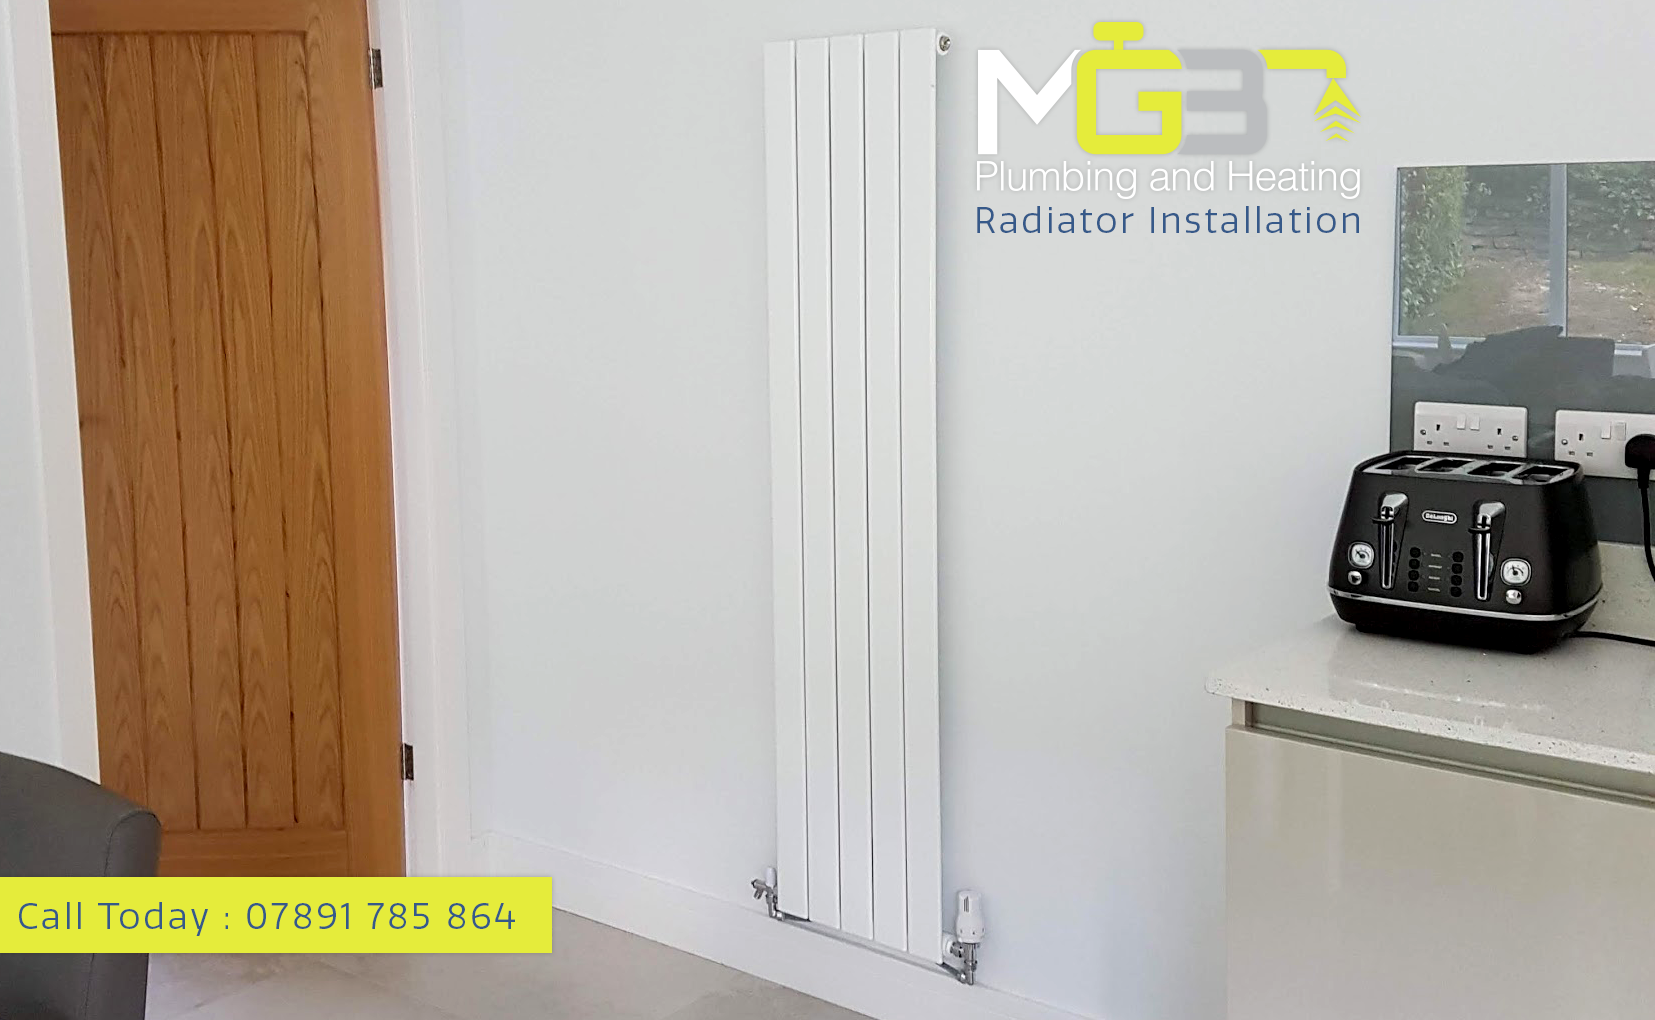 Radiator Replacement Radiator Repair In Rochdale Bury